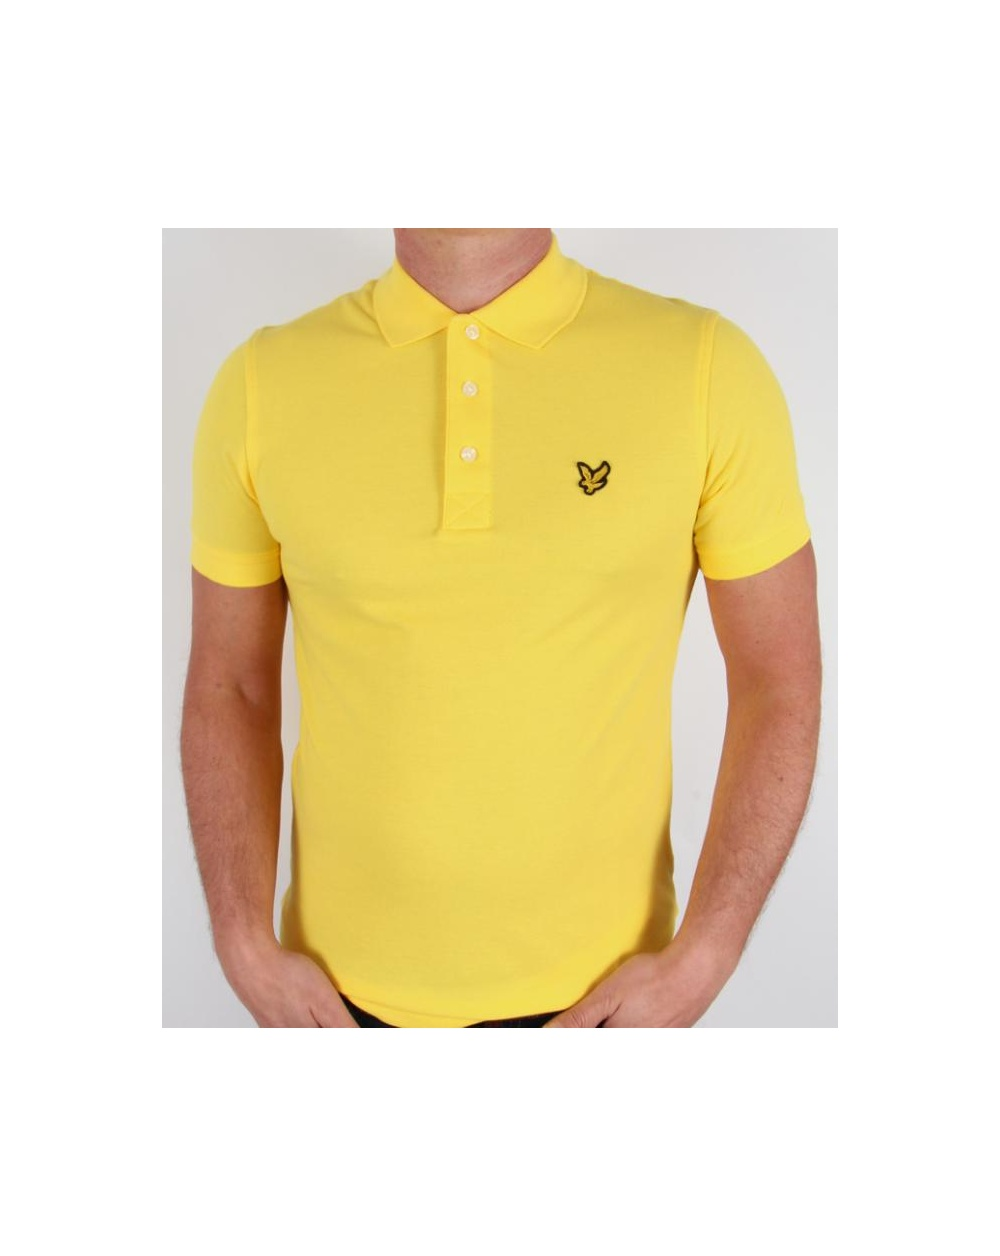 lyle and scott polo shirt s s yellow lyle scott polo shirt. Black Bedroom Furniture Sets. Home Design Ideas